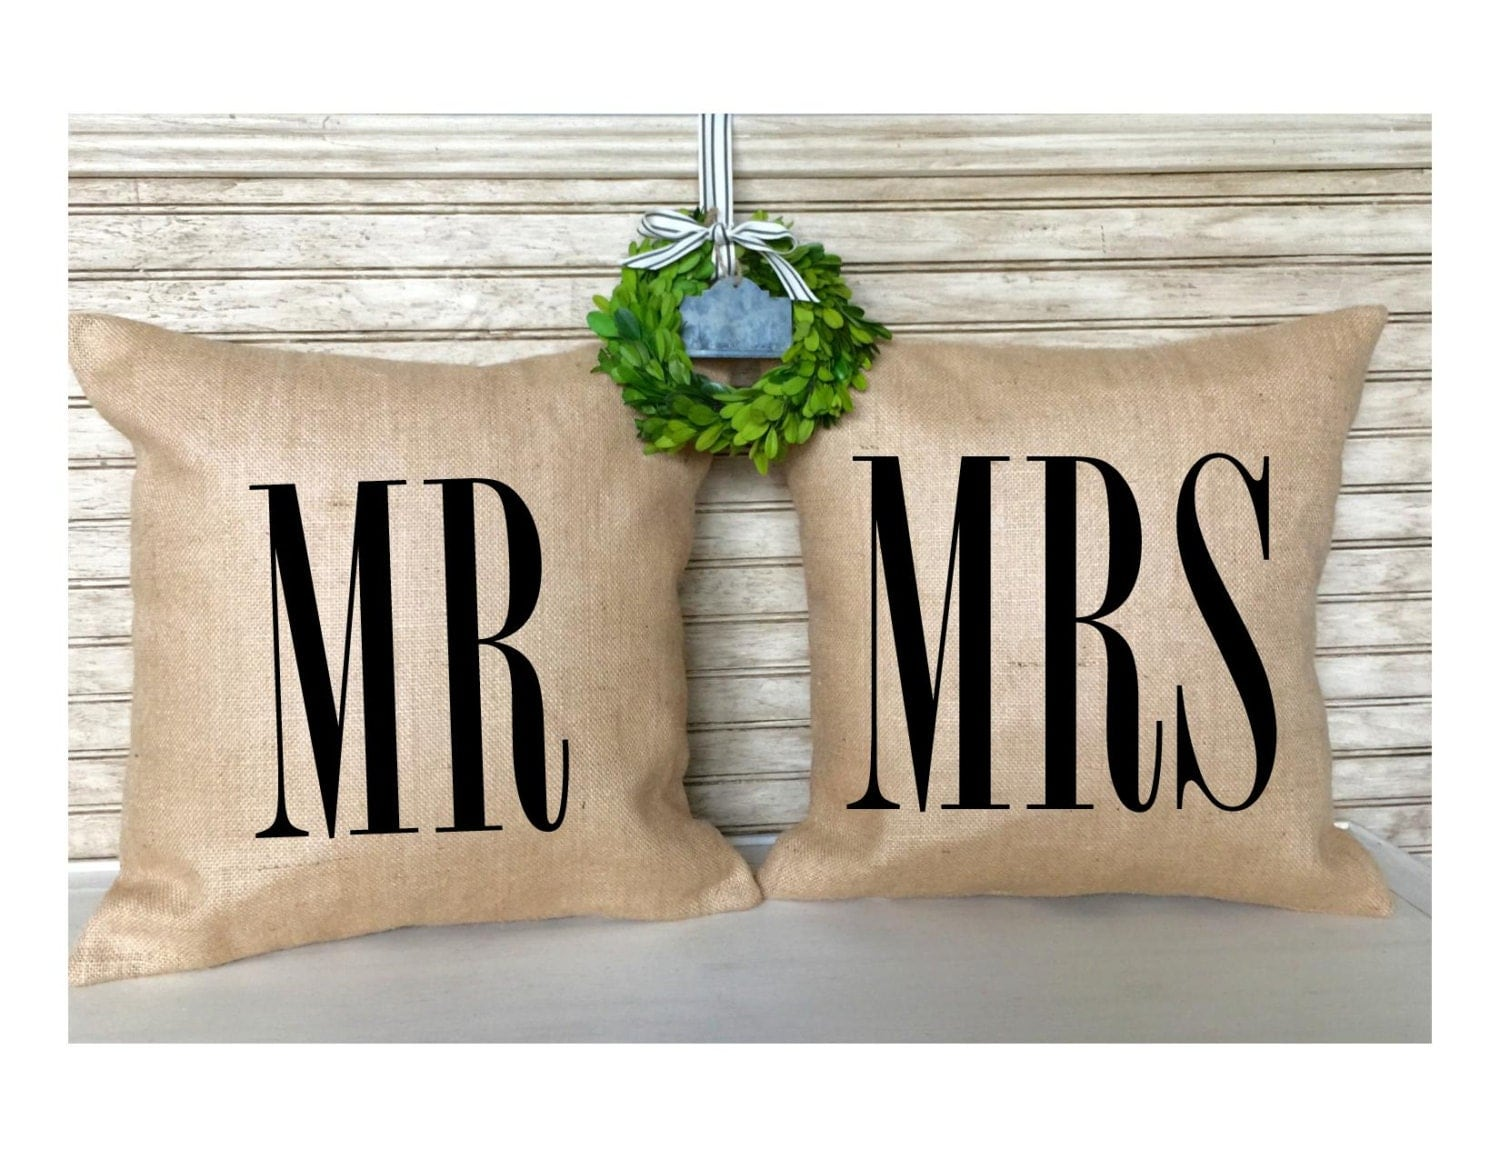 Mr And Mrs Gifts Wedding: Bride And Groom Gifts Mr. And Mrs.Wedding Pillows Shabby